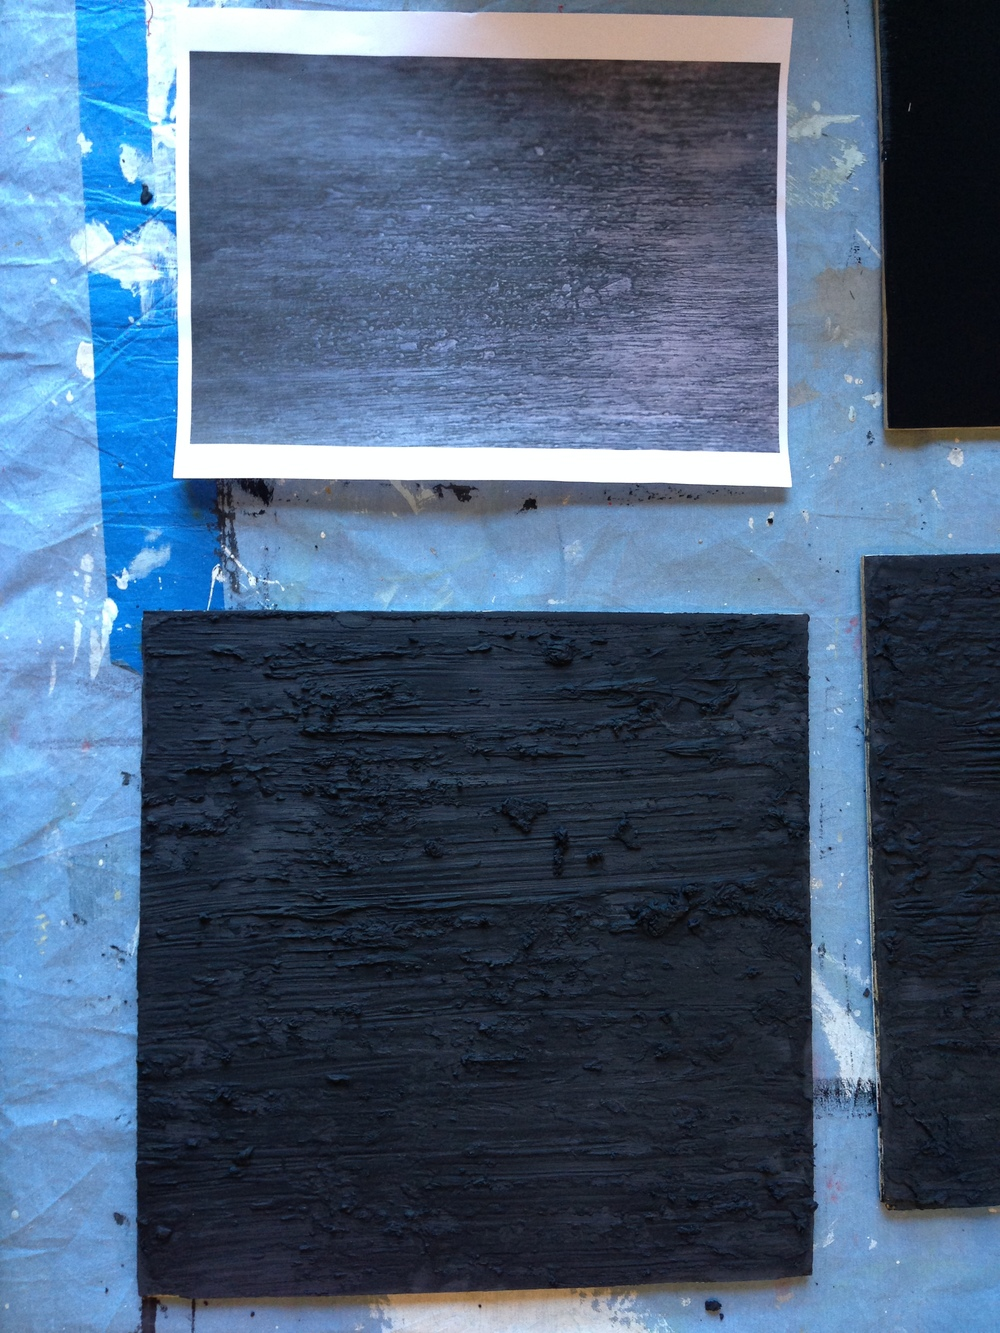 Working on some samples for the Richard Serra homage project.